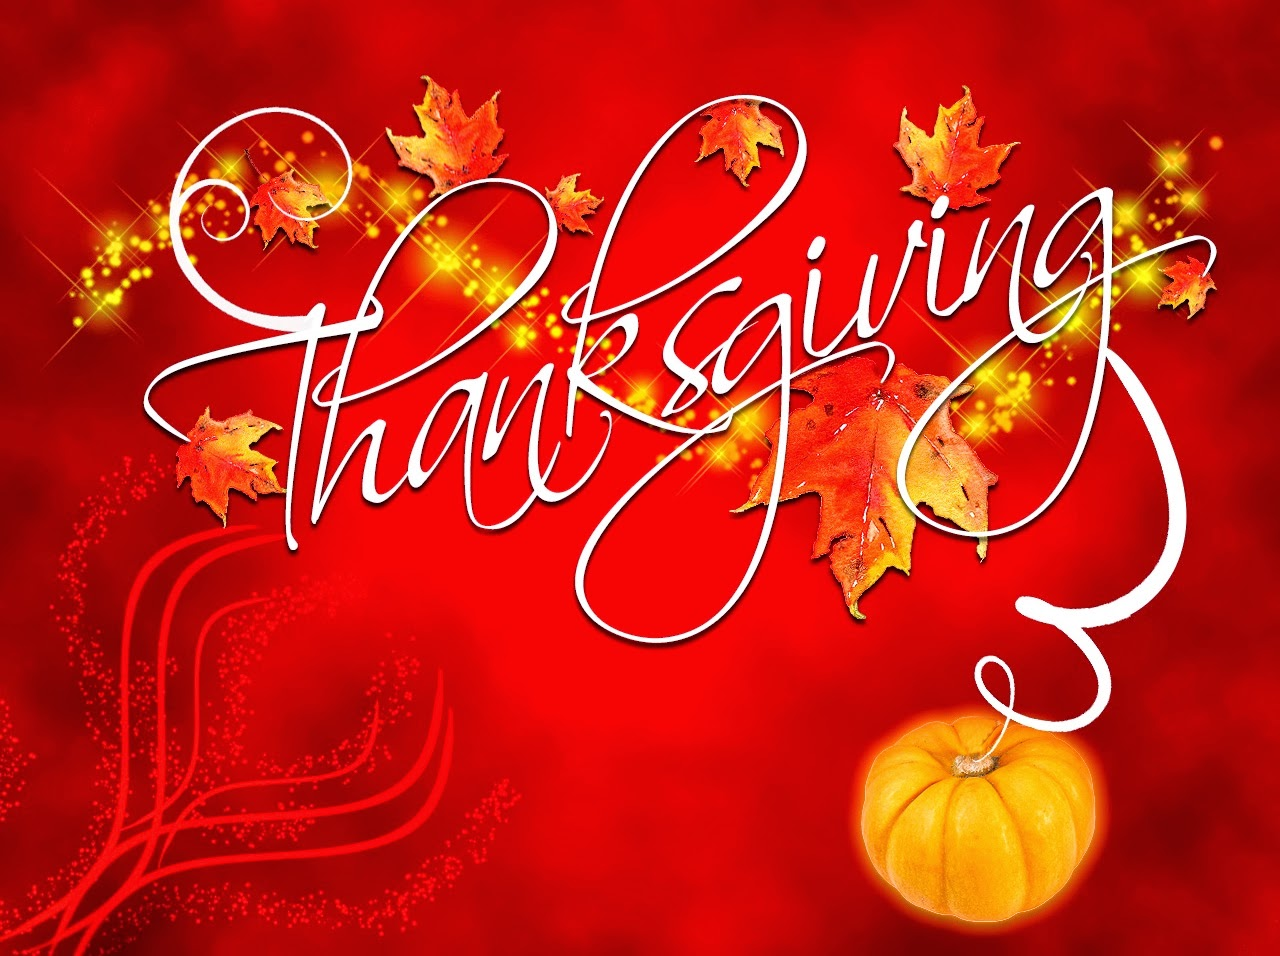 Top thanksgiving wallpapers cute thanksgiving wallpapers - Wallpaper desktop thanksgiving ...